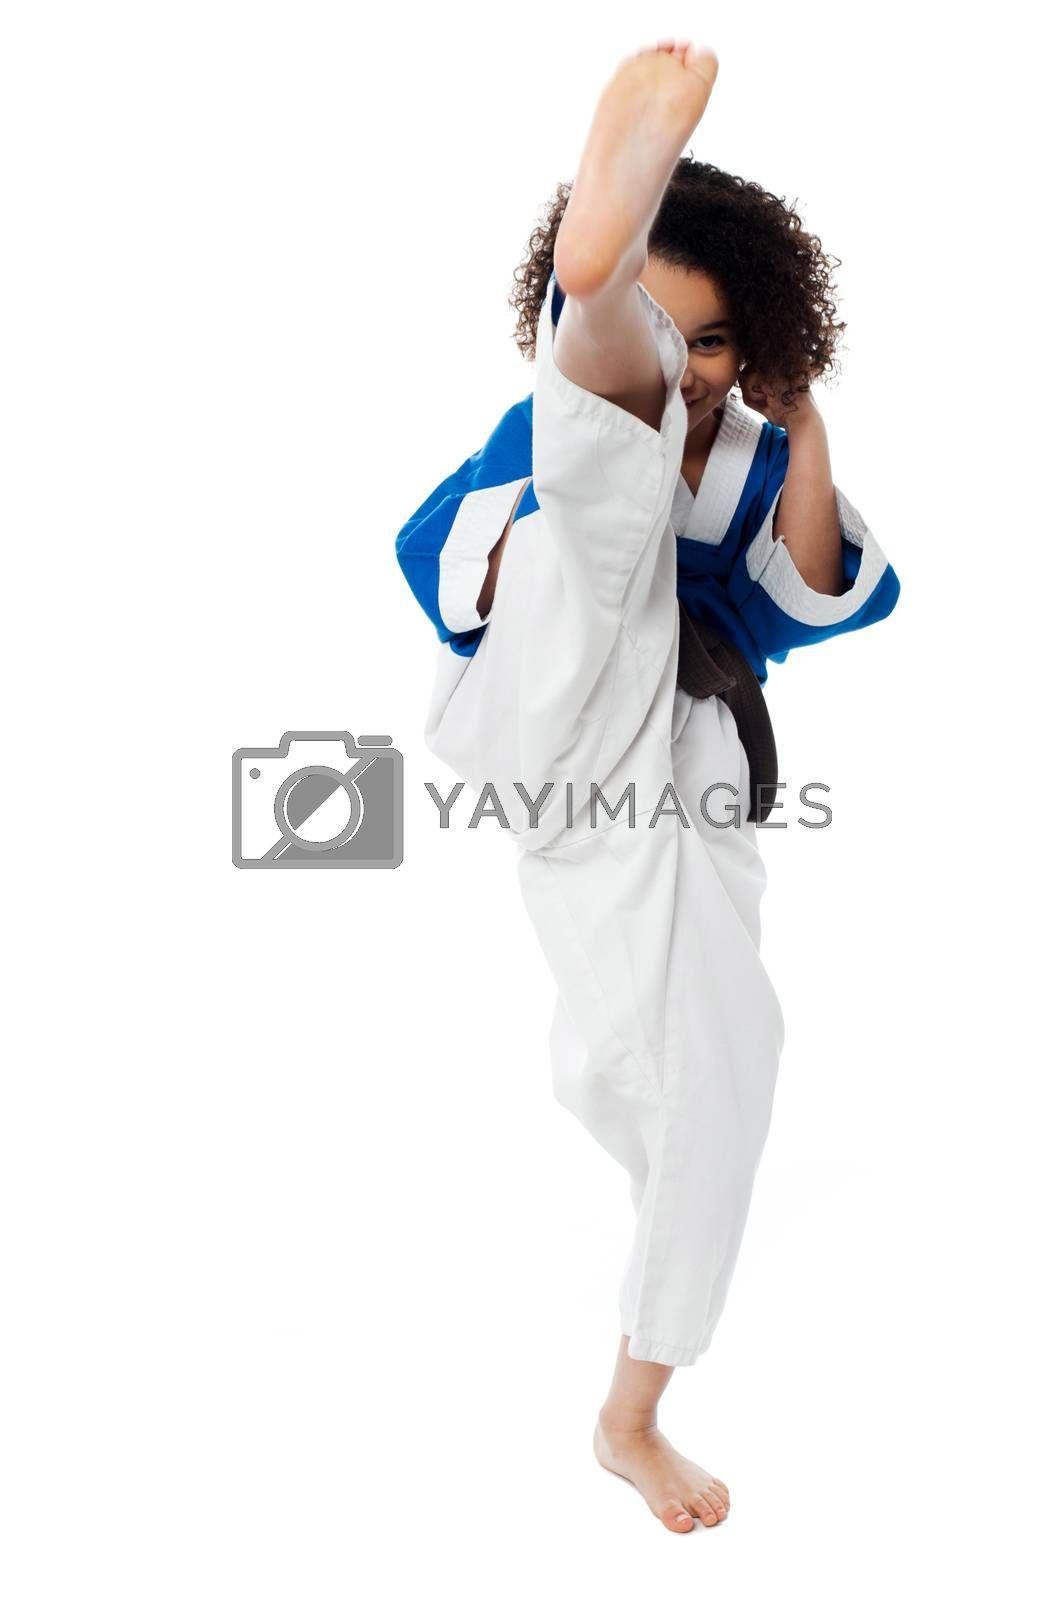 Image of a little girl practice karate over white